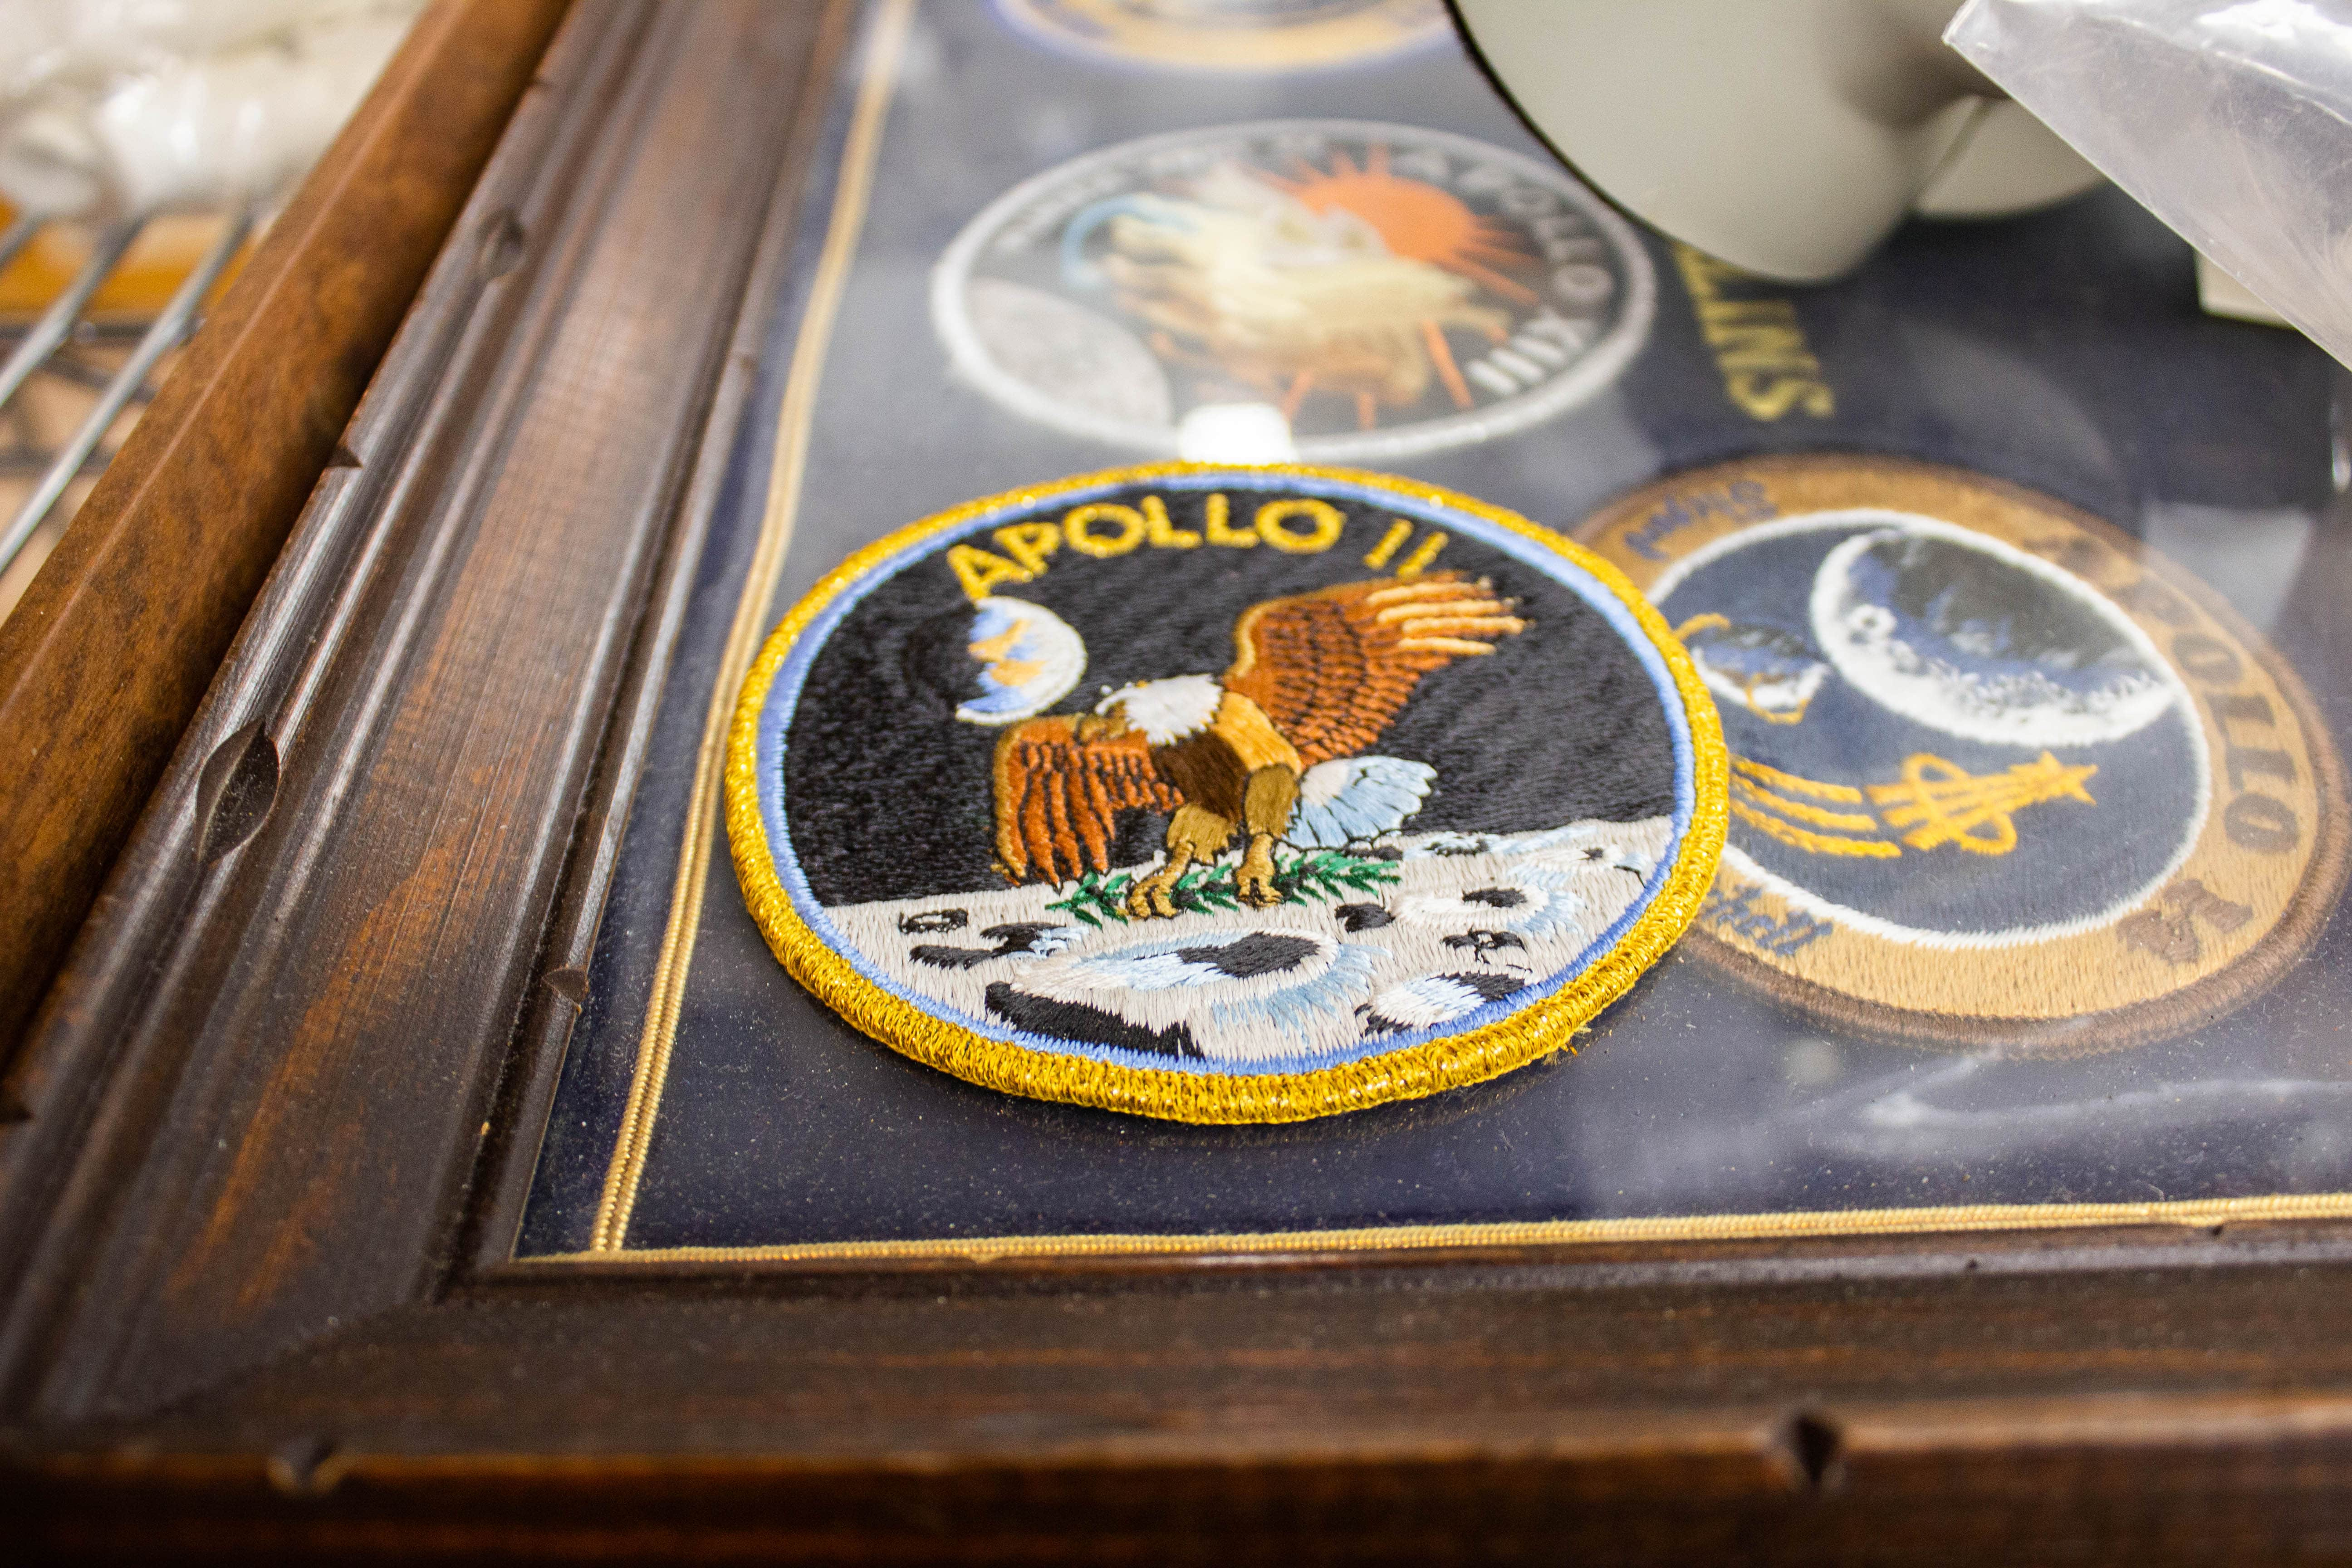 circular patch featuring an eagle on a navy background on the moon